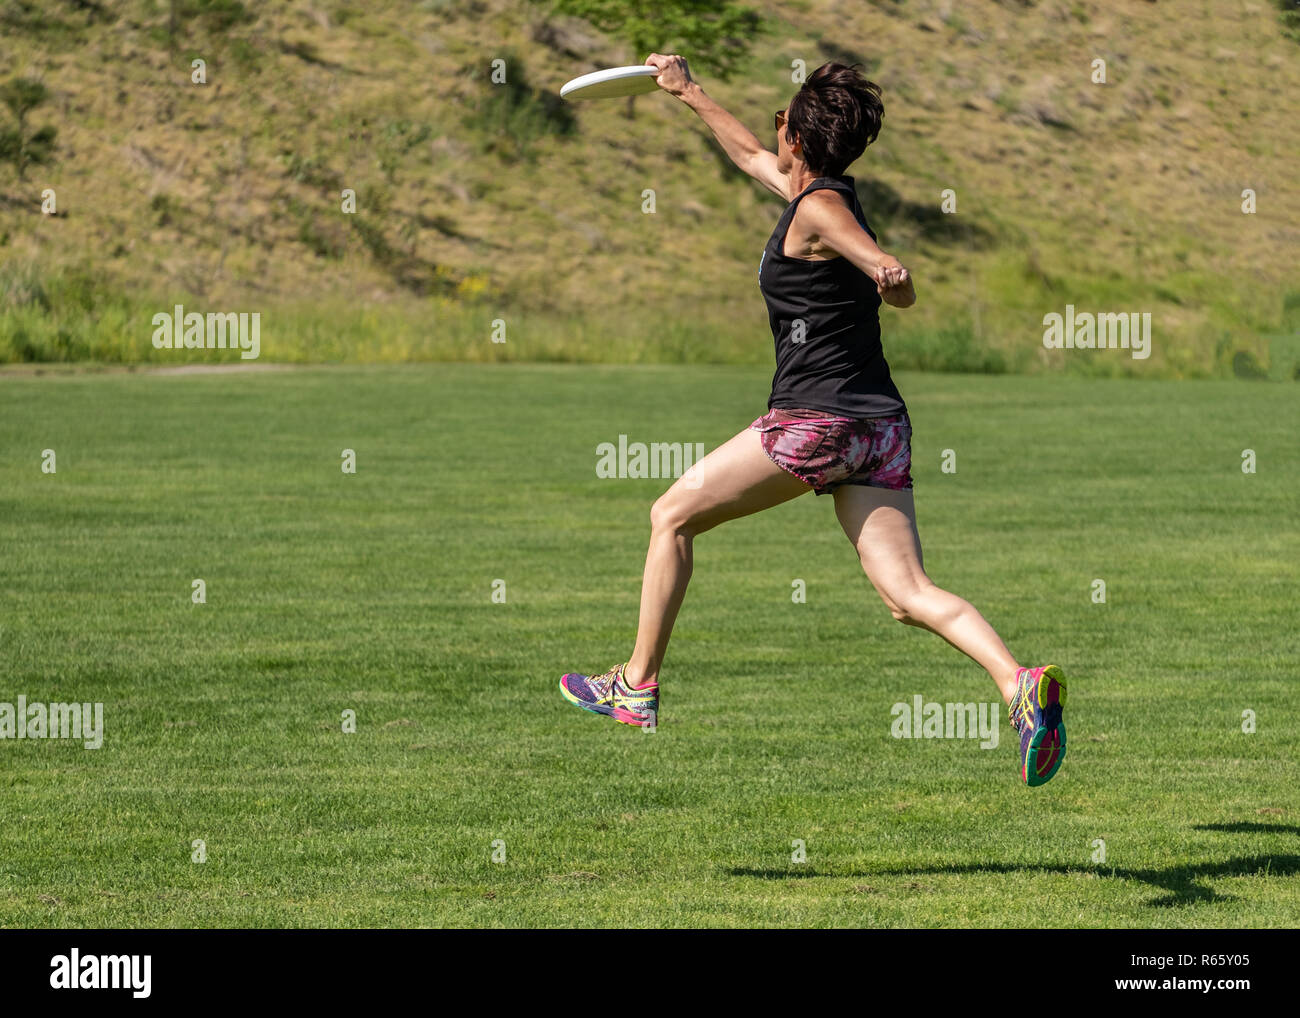 A very fit woman in her late 40's, running at full speed while playing sports, leaping into the air and catching a flying disc - Stock Image